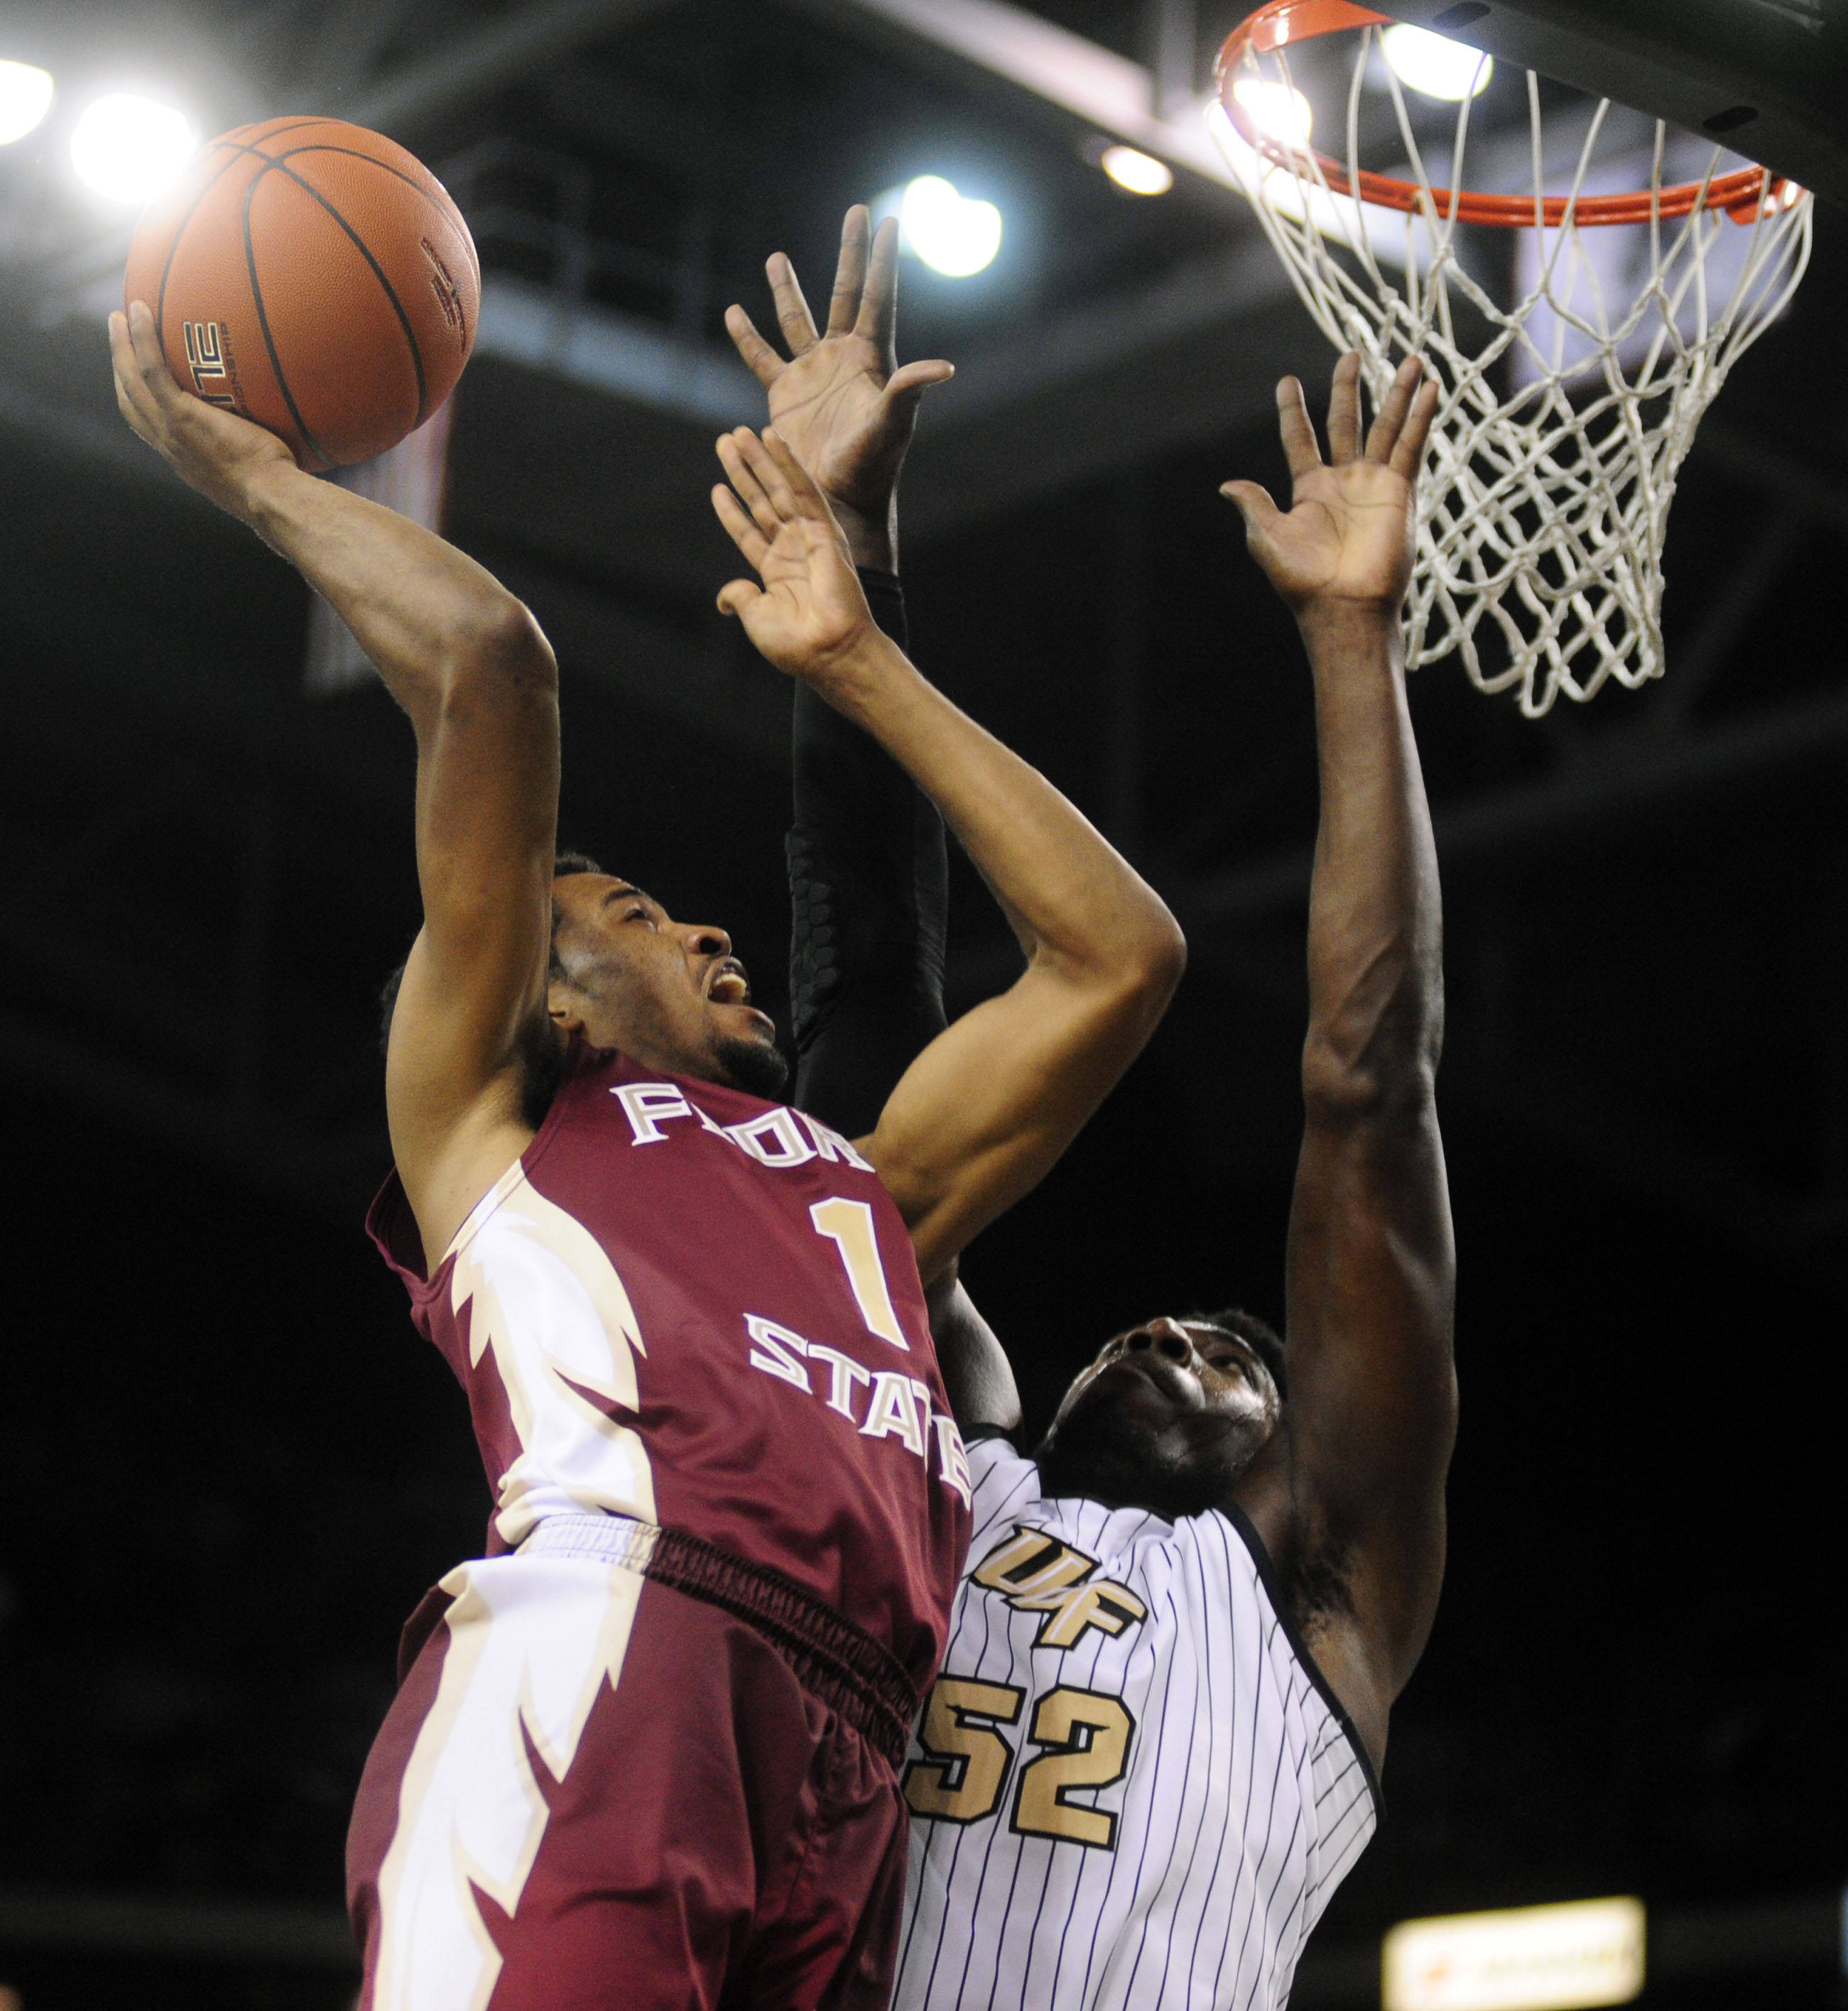 Guard Devon Bookert (1) goes for a layup in front of Knights forward Staphon Blair (52). David Manning-USA TODAY Sports